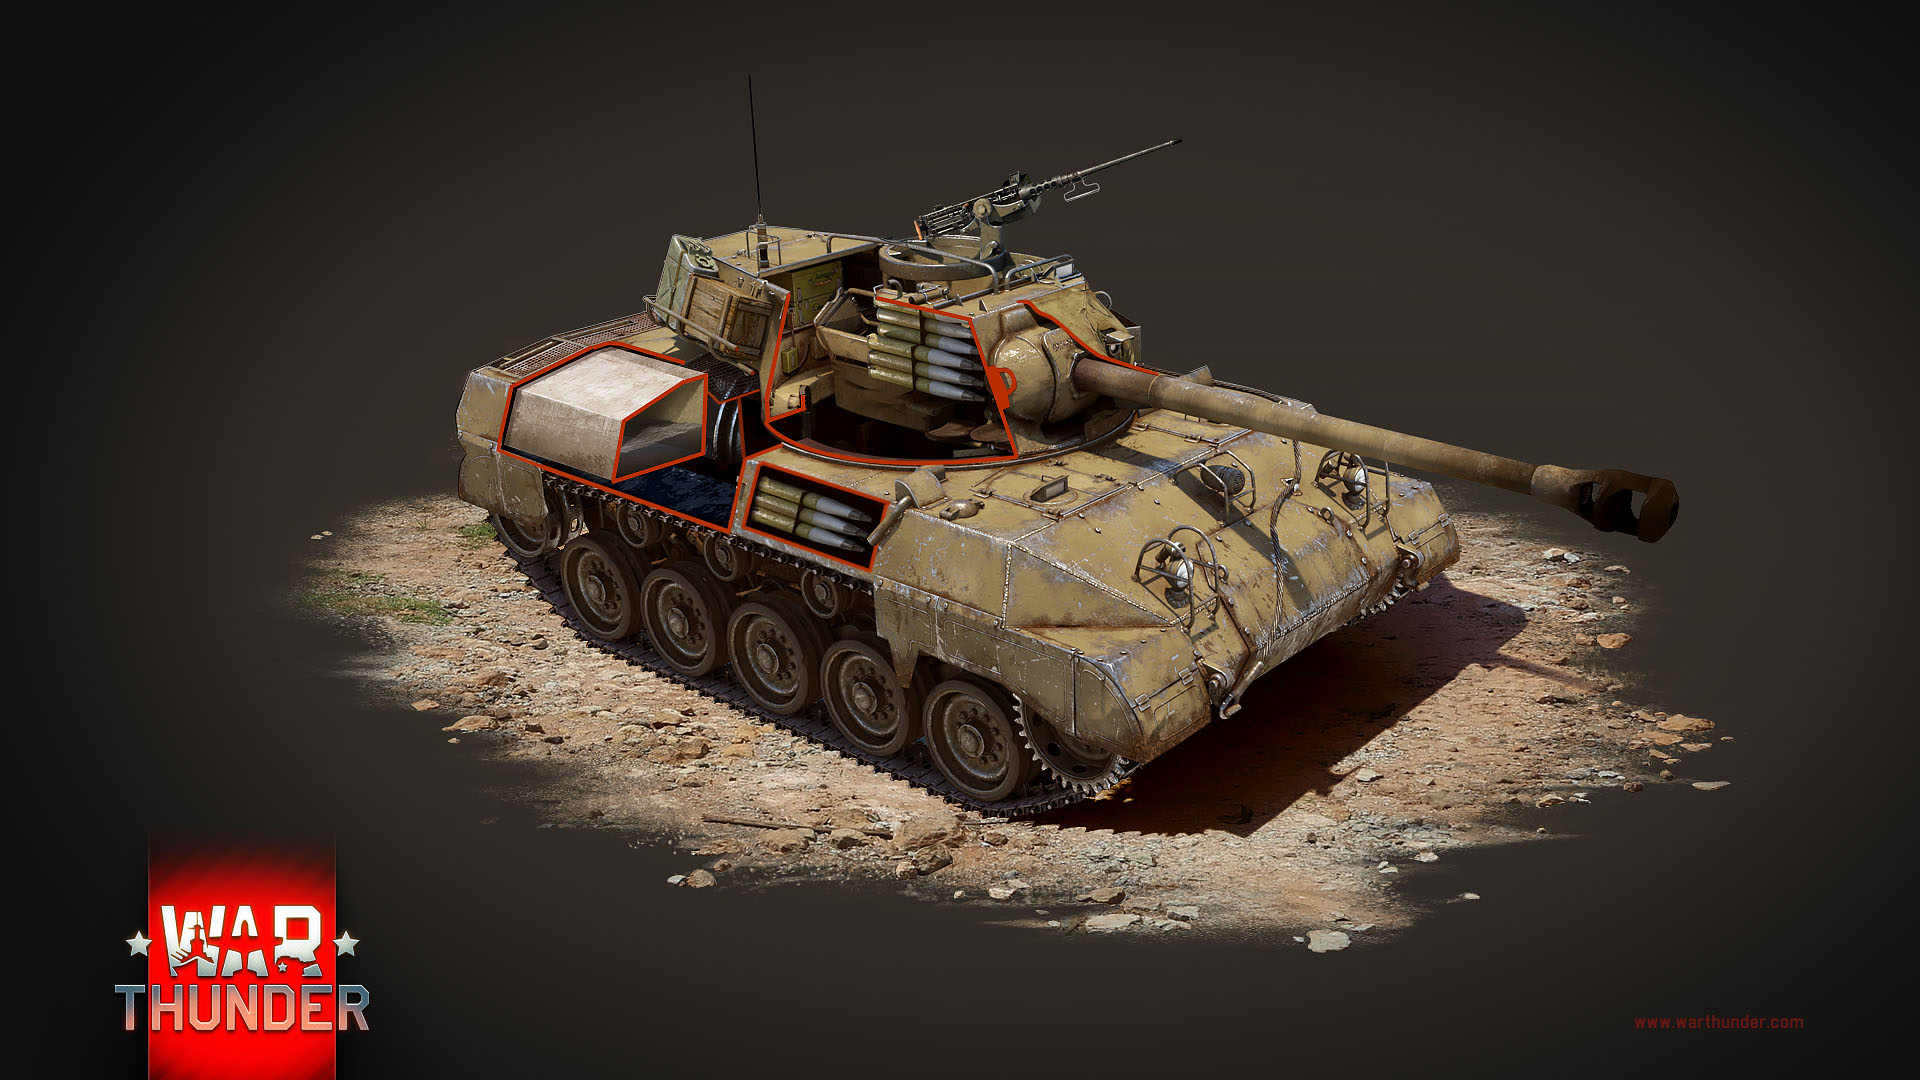 War thunder game discussions images of nature